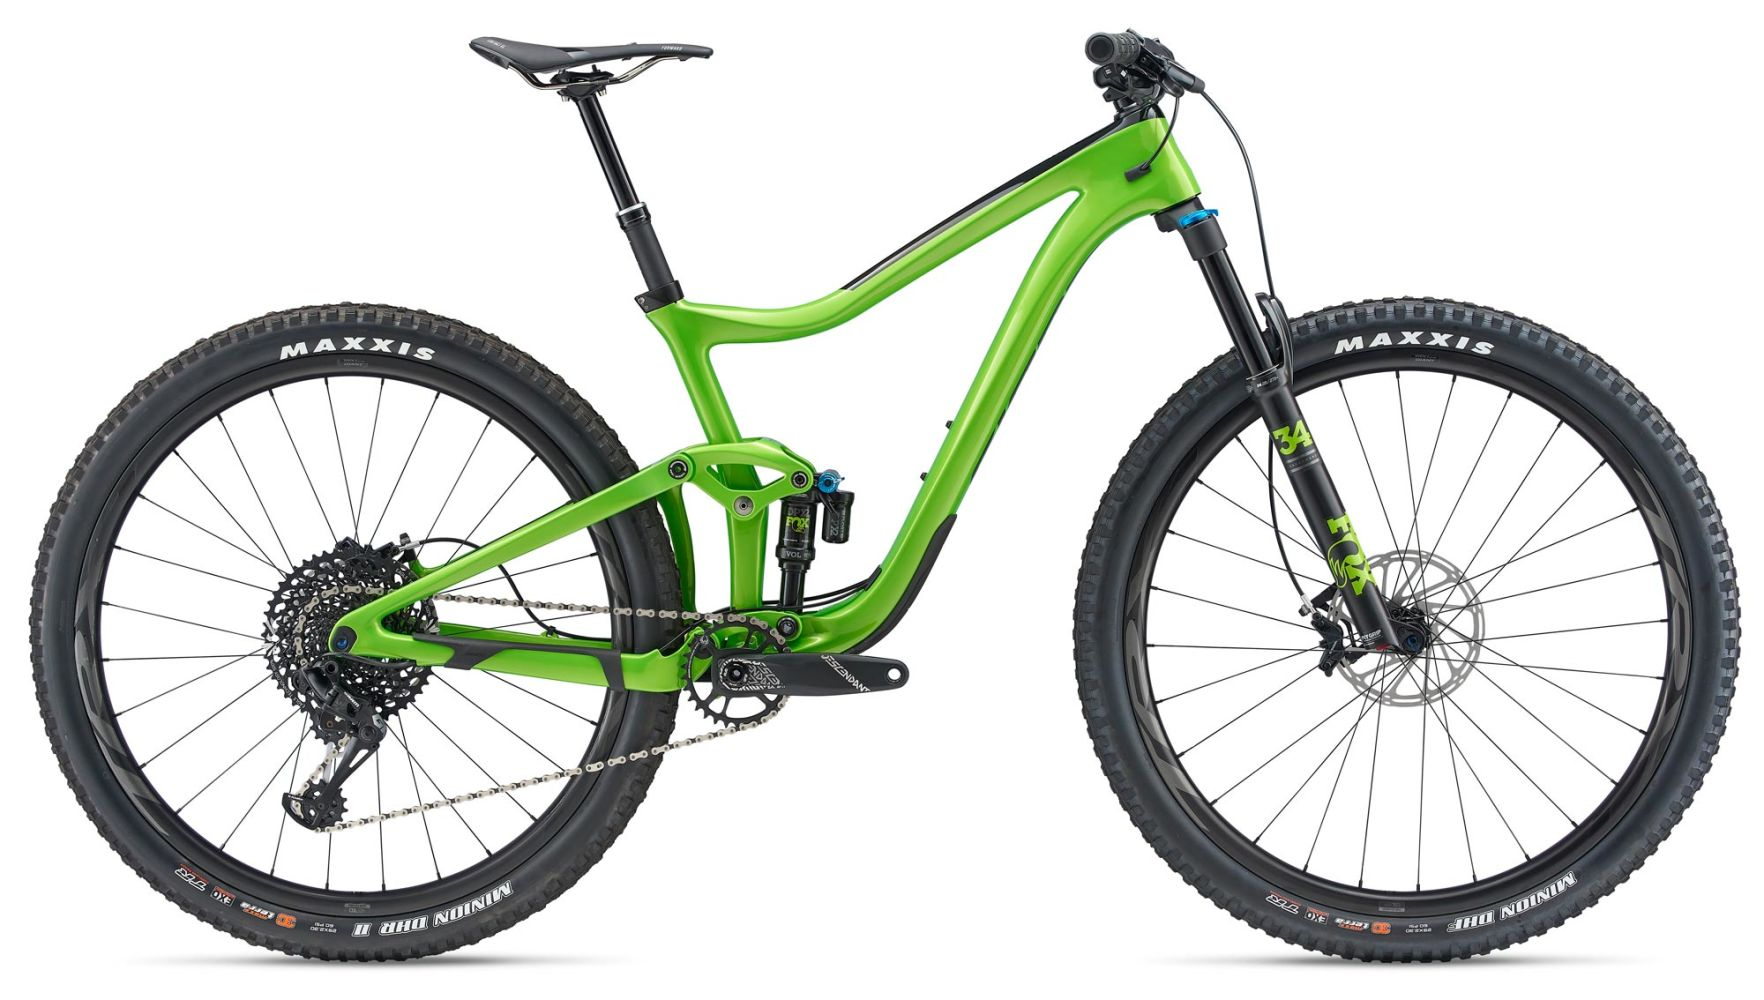 Trance Advanced Pro 29 2019 Giant Bicycles United States